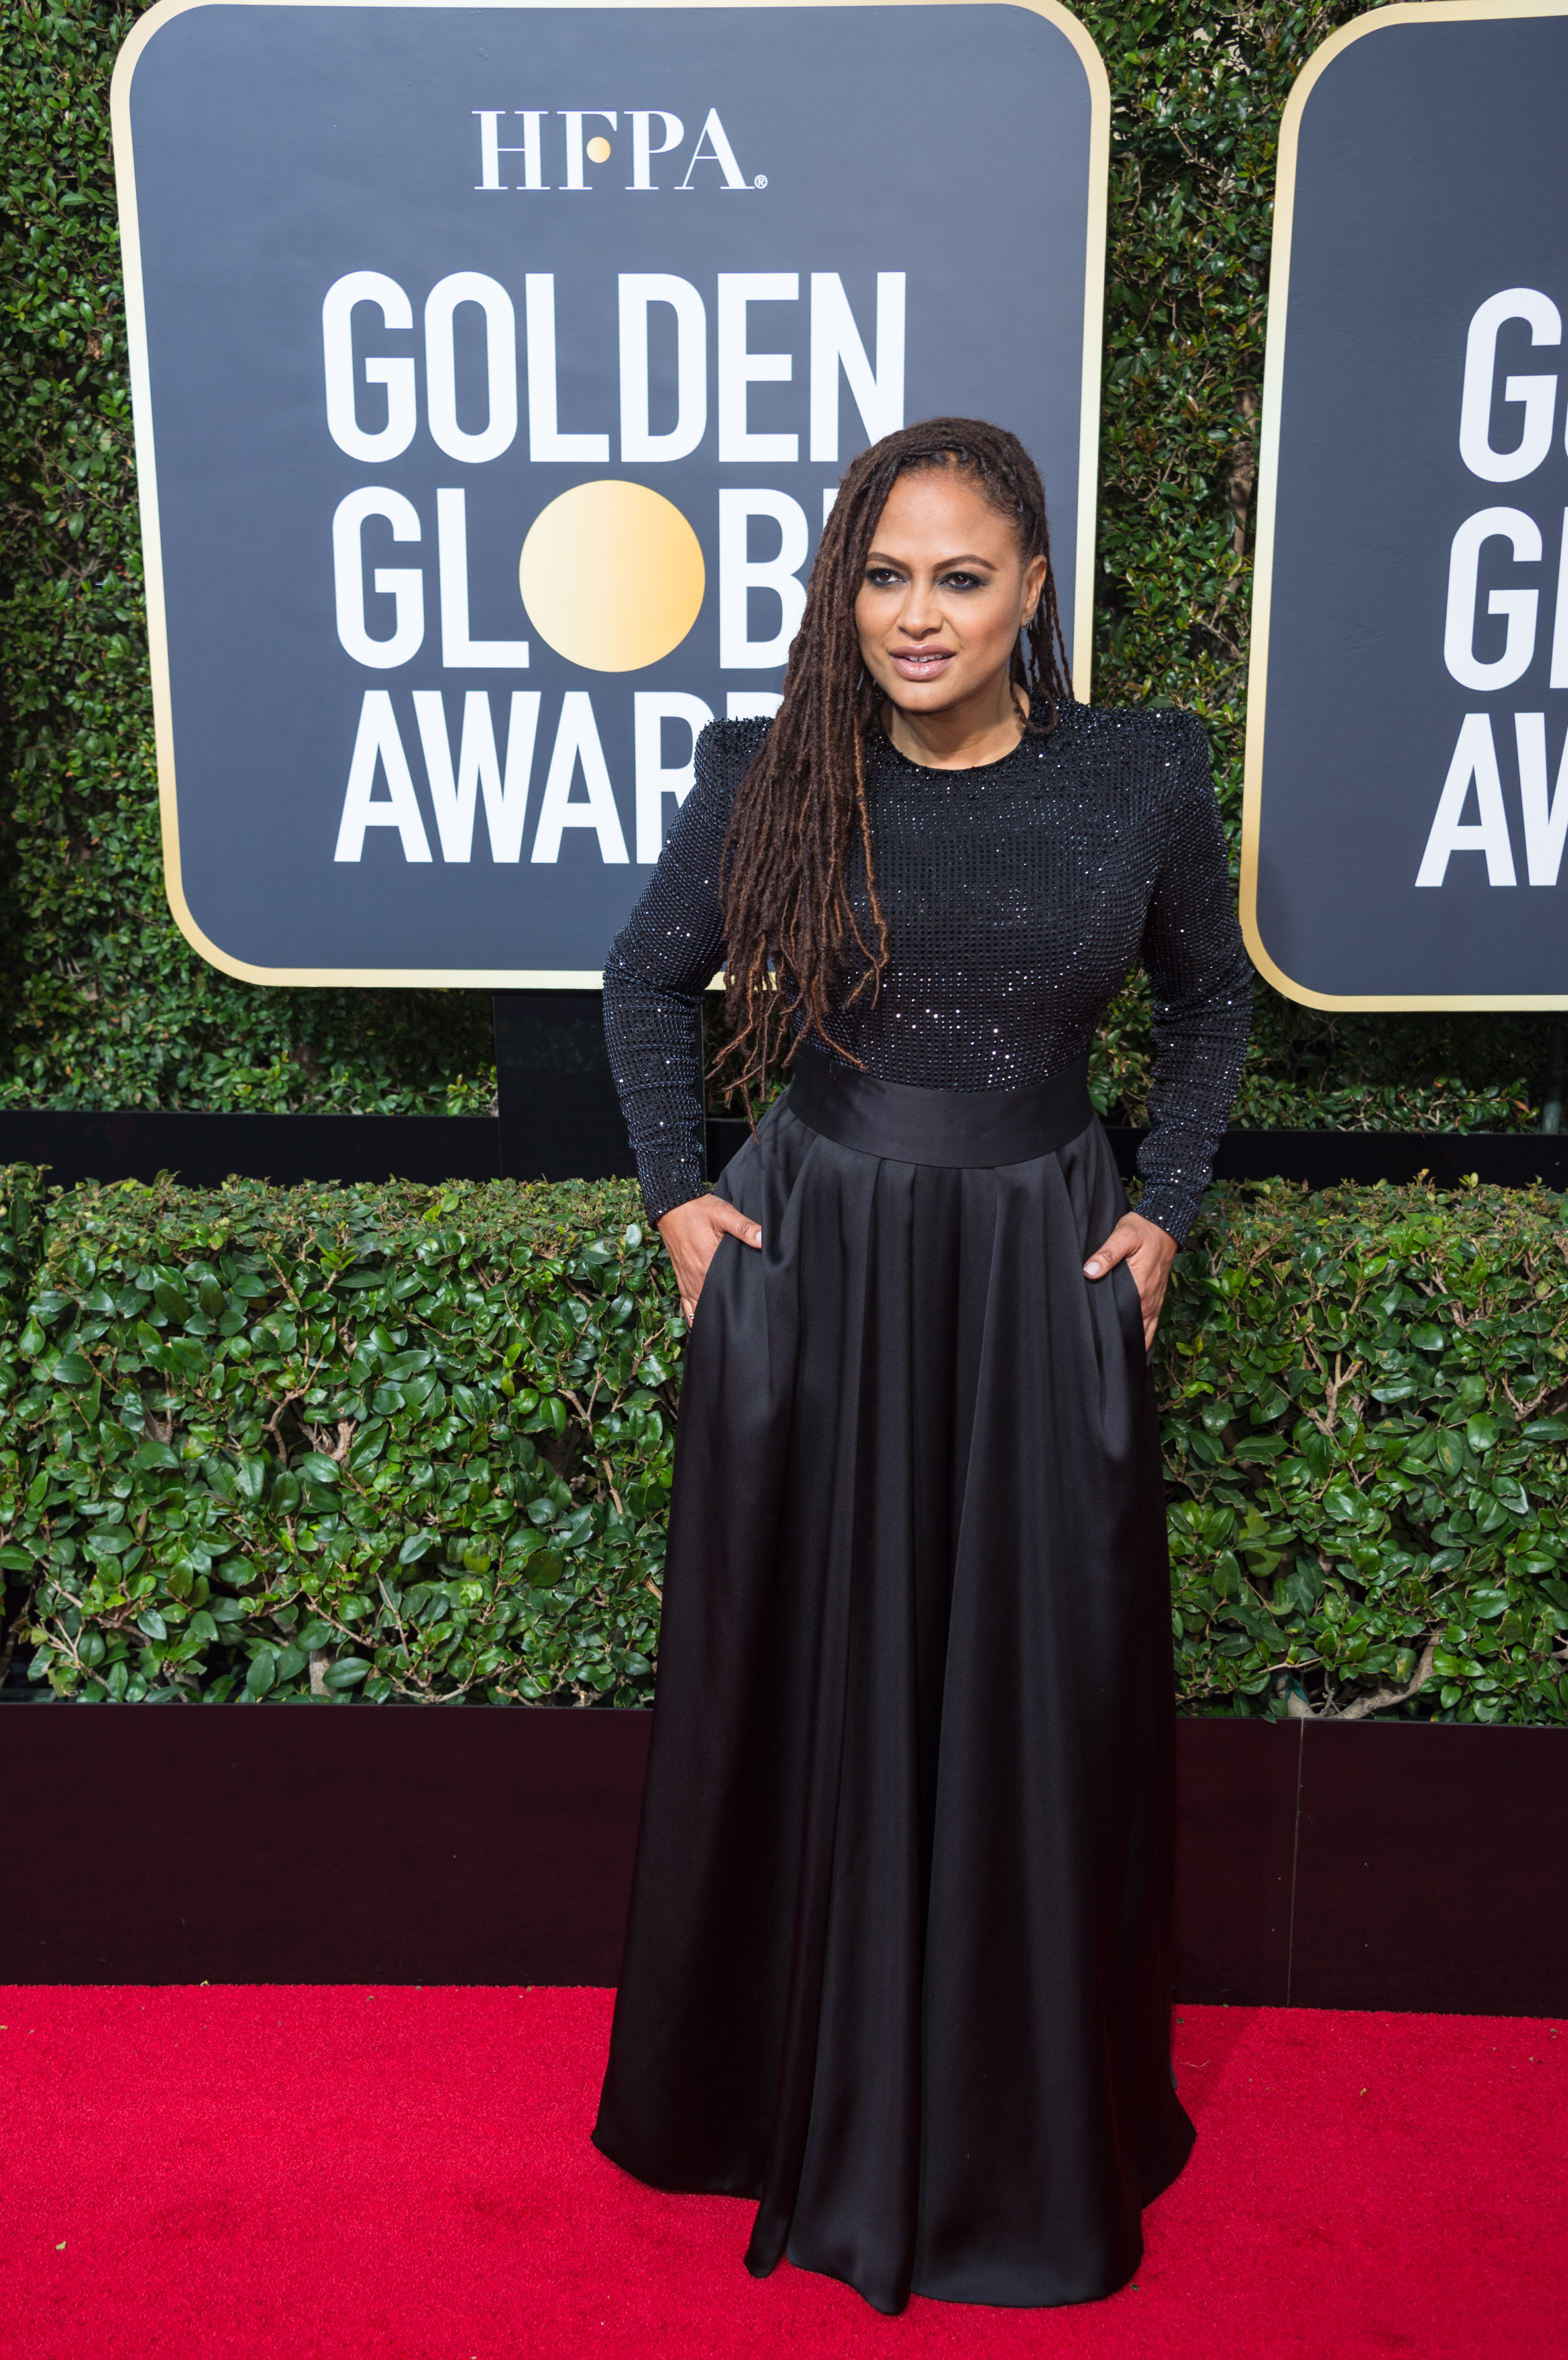 Ava DuVernay attends the 75th Annual Golden Globes Awards at the Beverly Hilton in Beverly Hills, CA on Sunday, January 7, 2018.